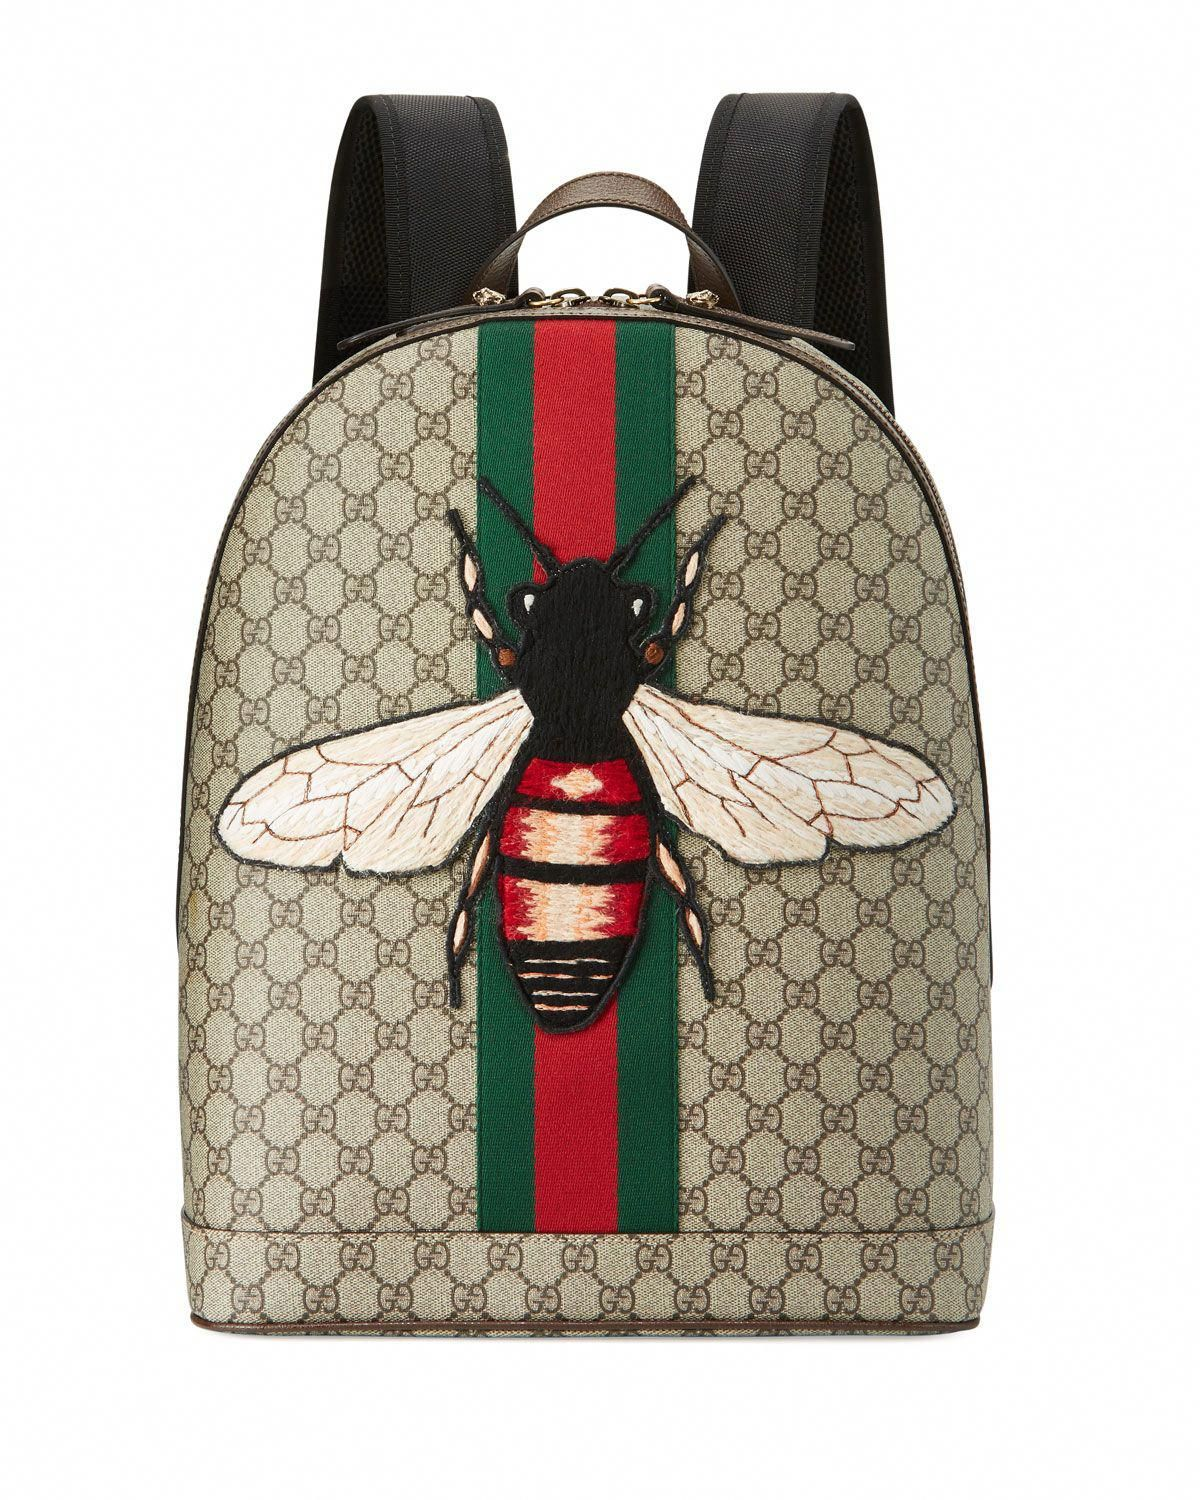 ea69876e5 Gucci Animalier backpack in GG supreme canvas with hand-embroidered and  -applied bee appliqu. Signature green/red/green web stripe down center  front.